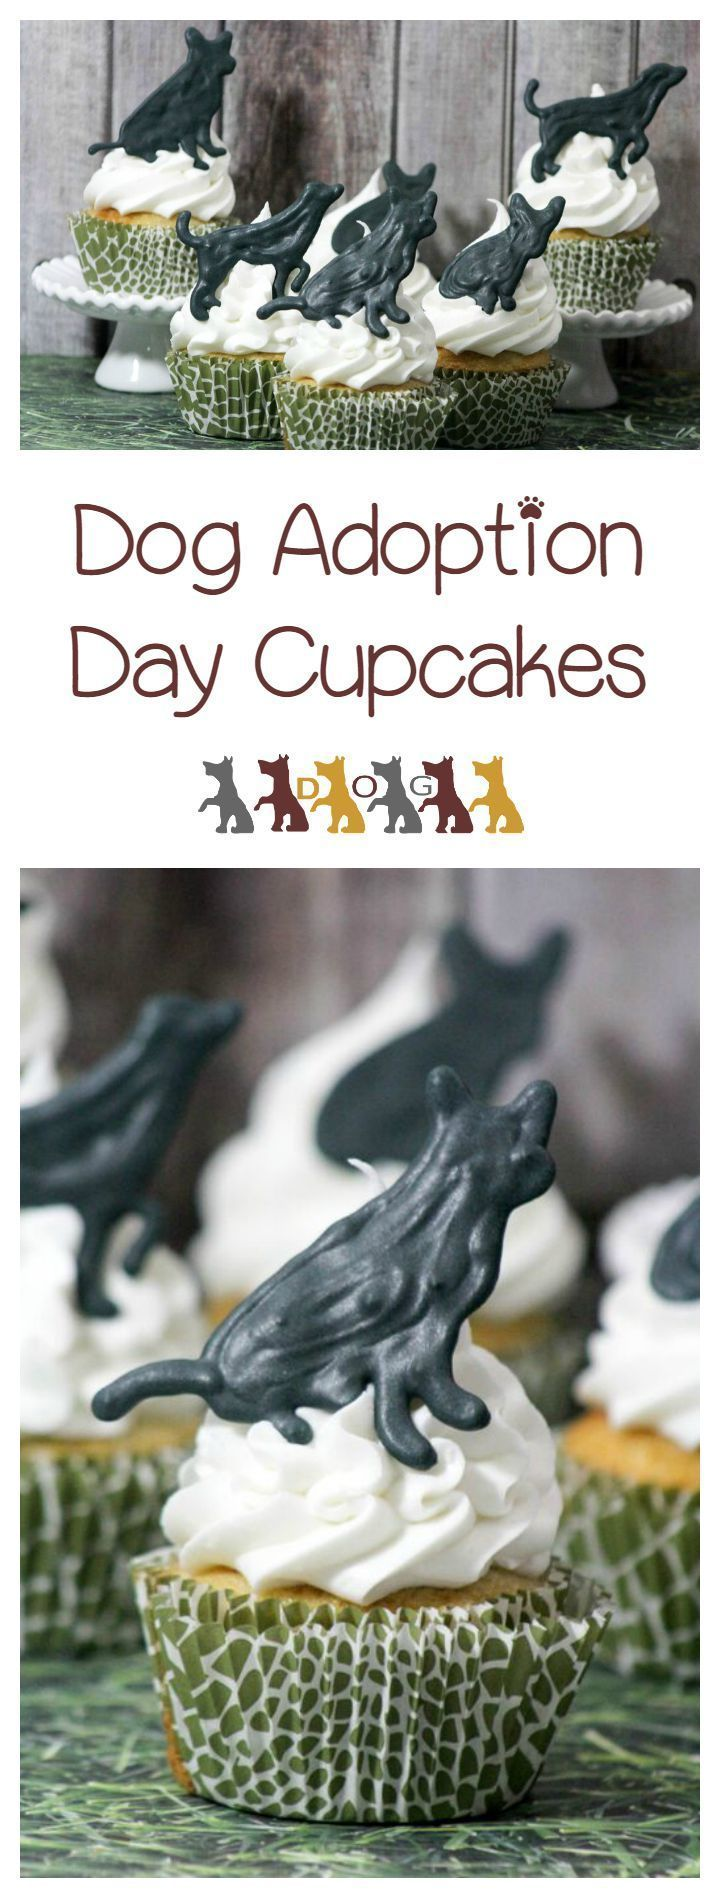 best images about cupcakes on pinterest cupcake ideas cupcake